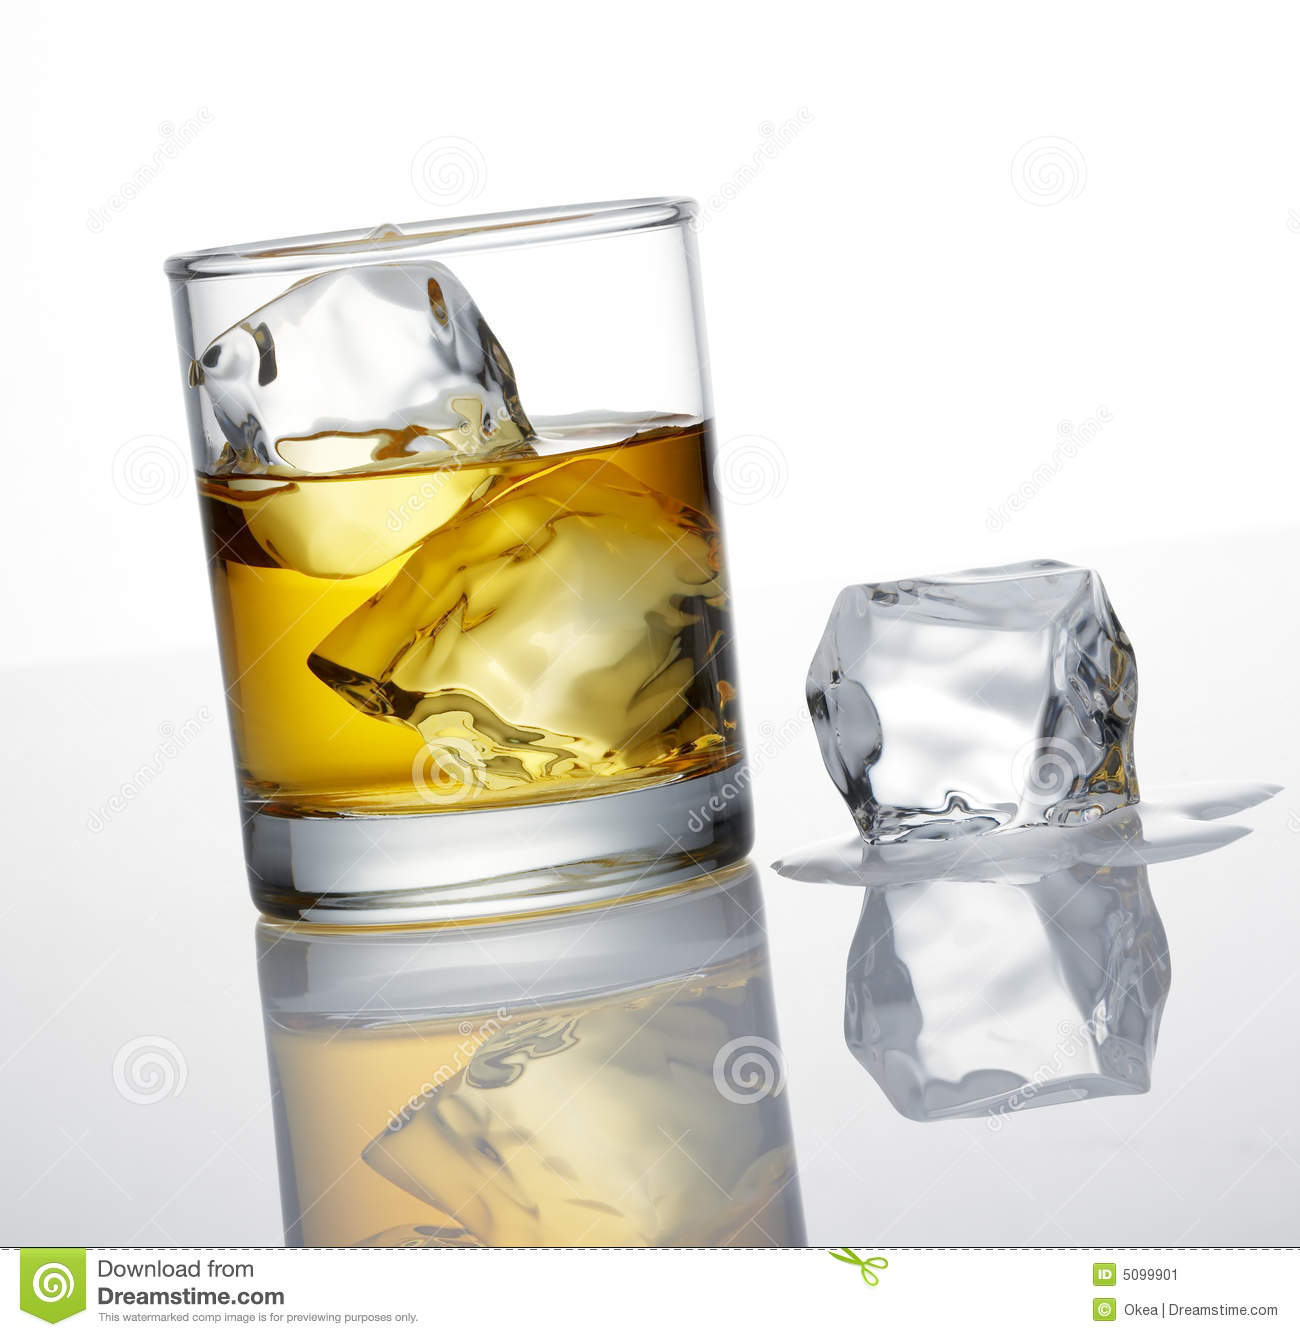 Ice cube whisky.